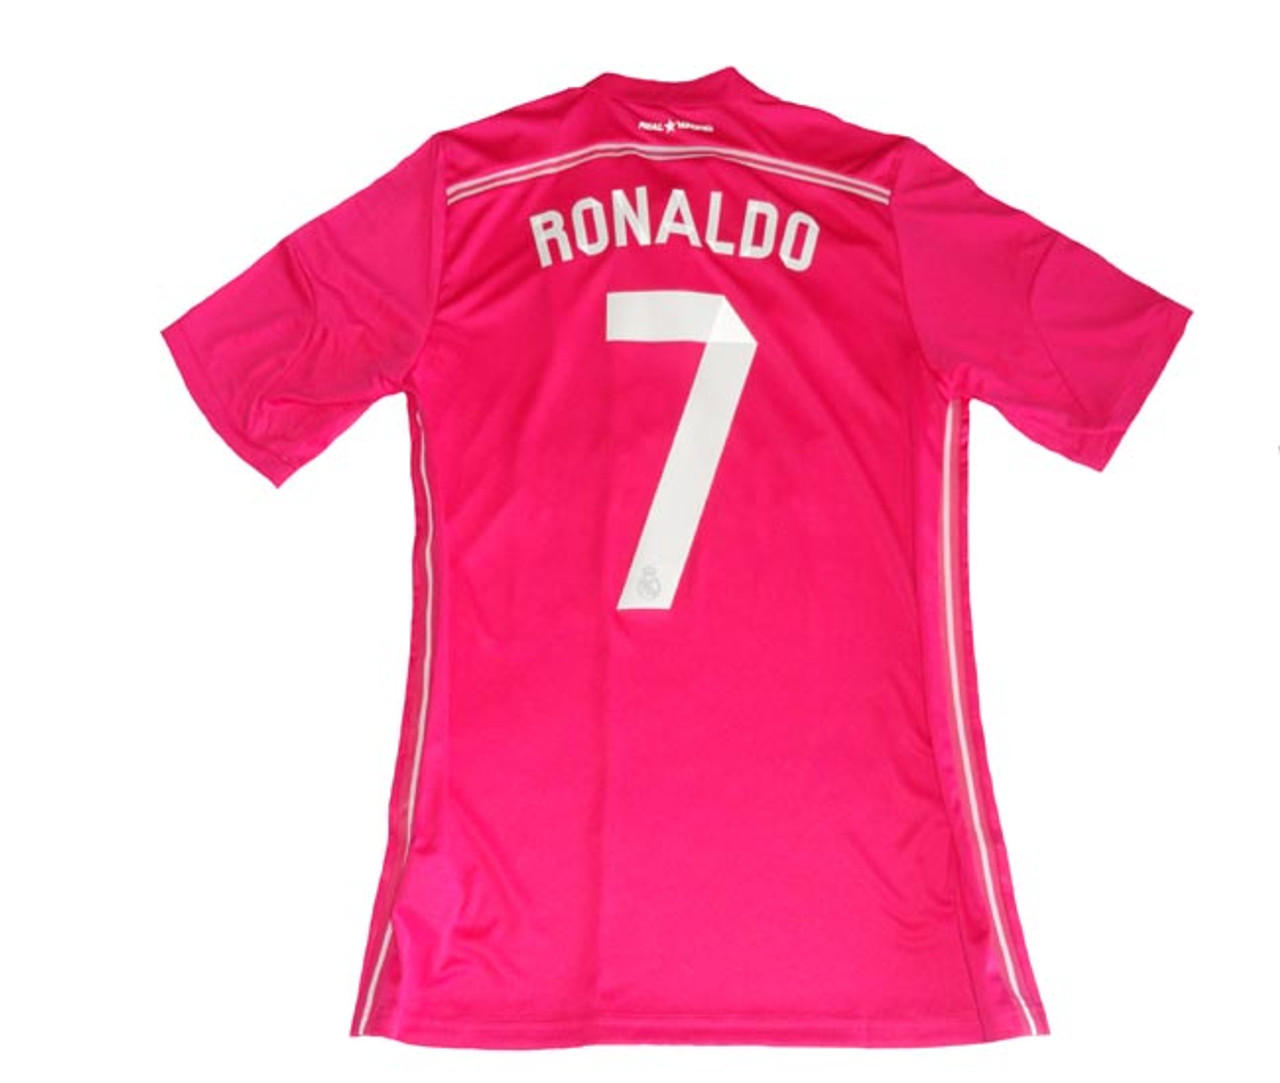 newest 8ec77 6aed6 ADIDAS REAL MADRID 2015 `RONALDO` AWAY PINK JERSEY